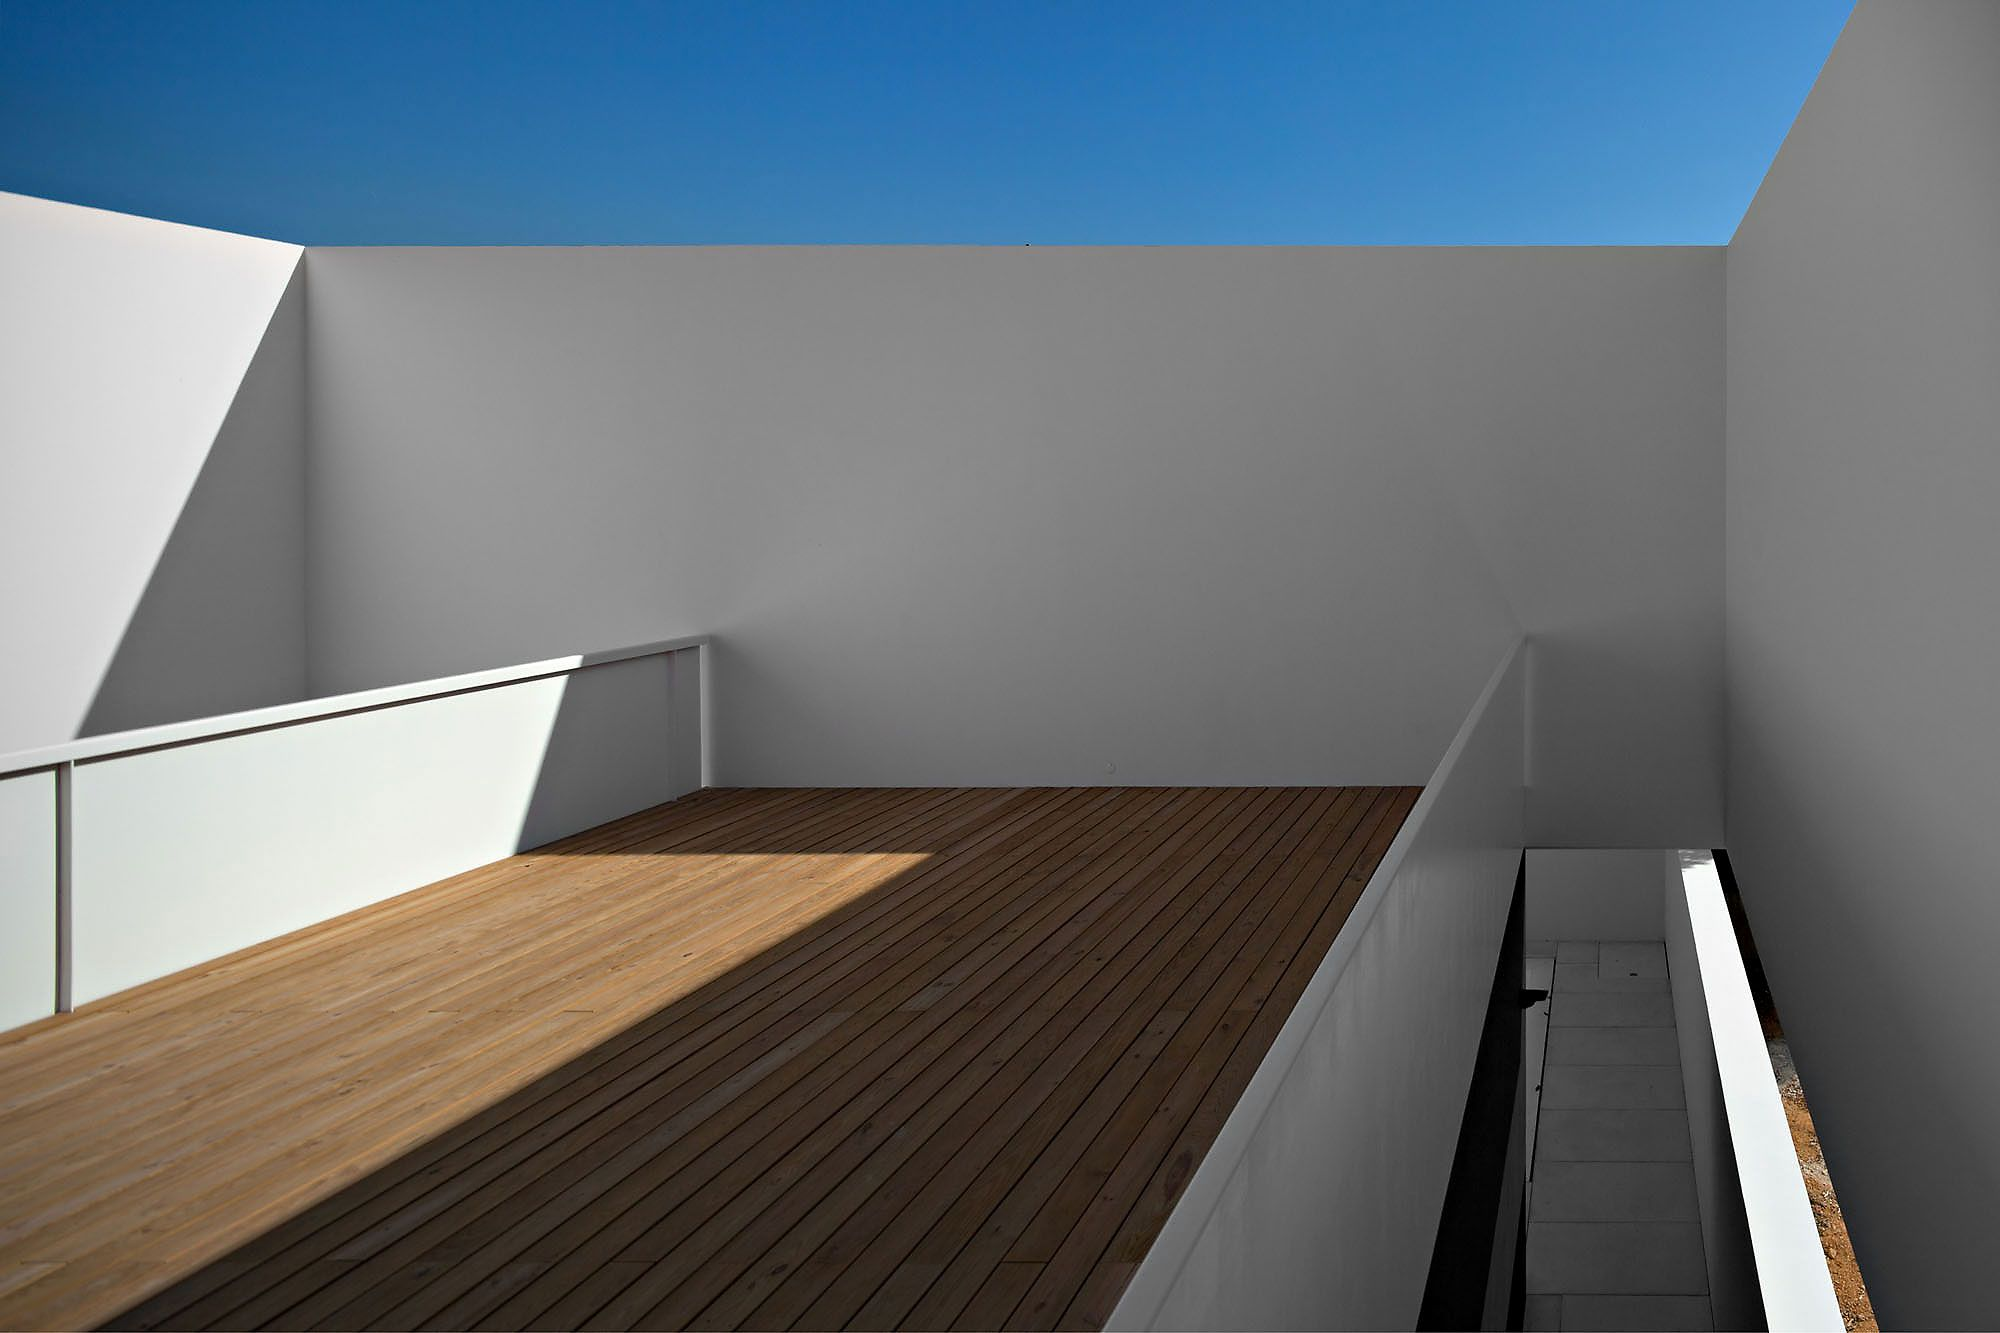 House-in-Juso-11